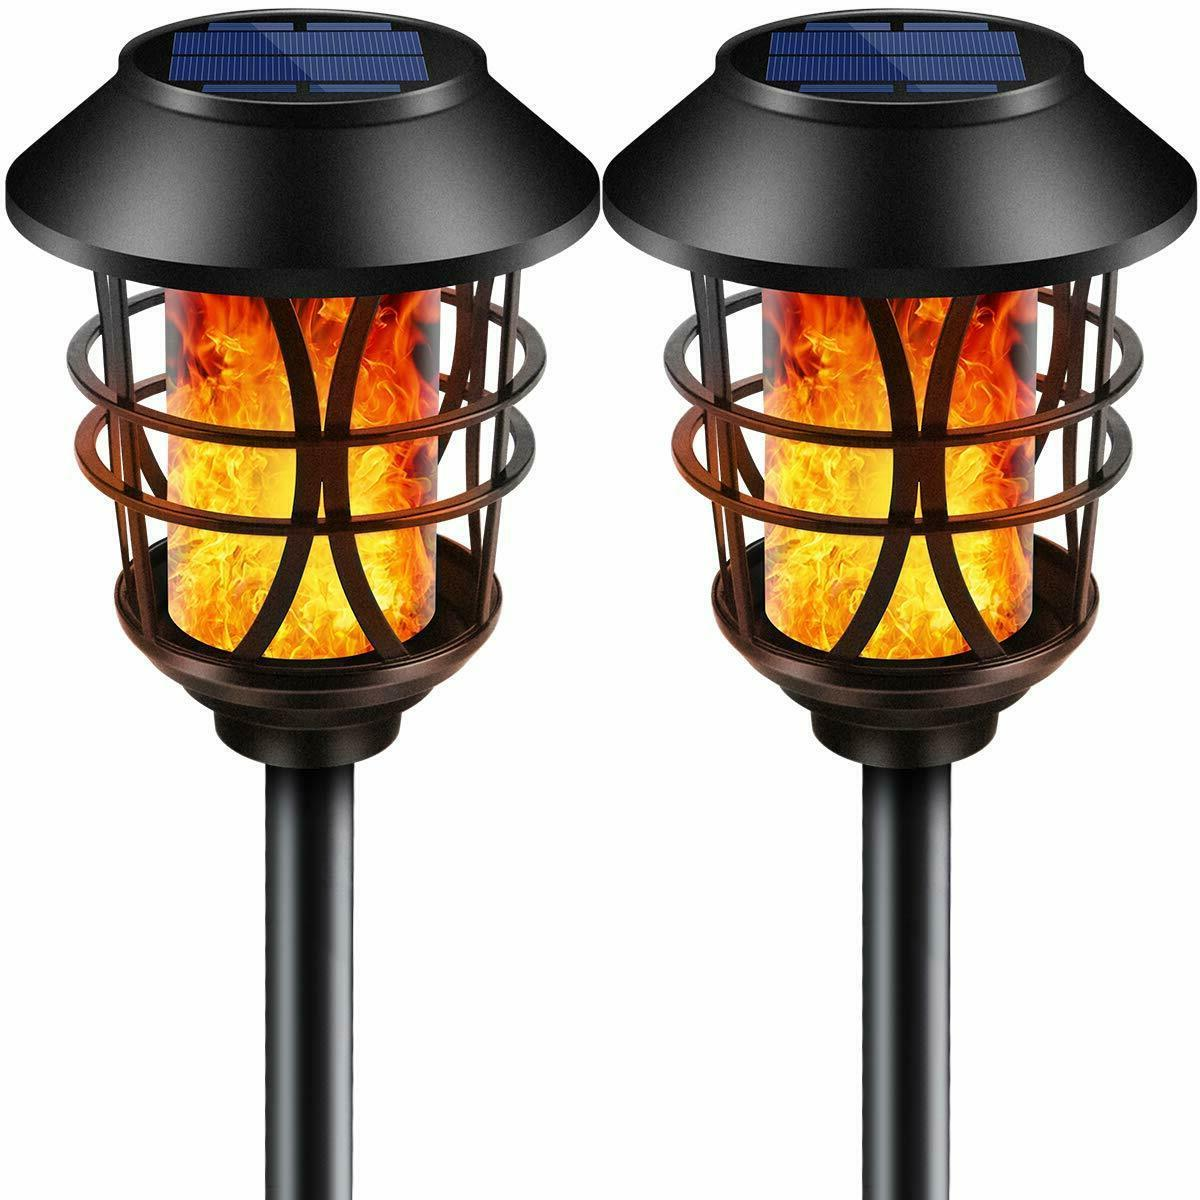 waterproof outdoor solar lights metal flickering flame